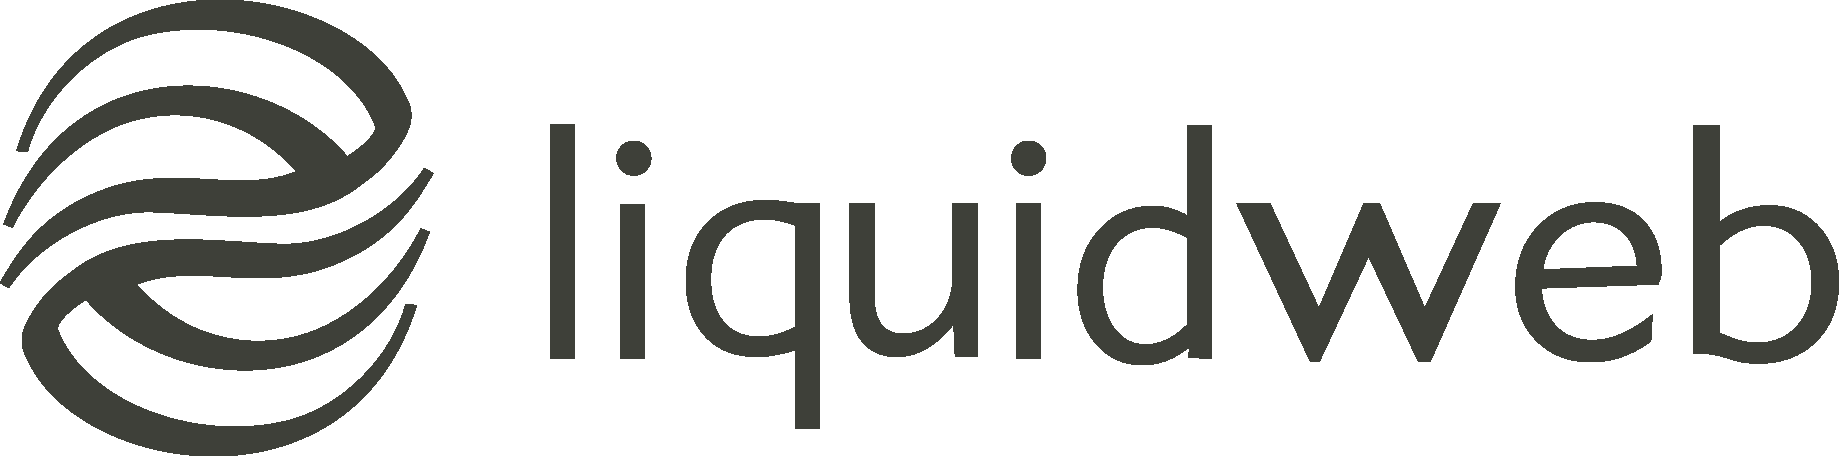 Liquid Web Inc.